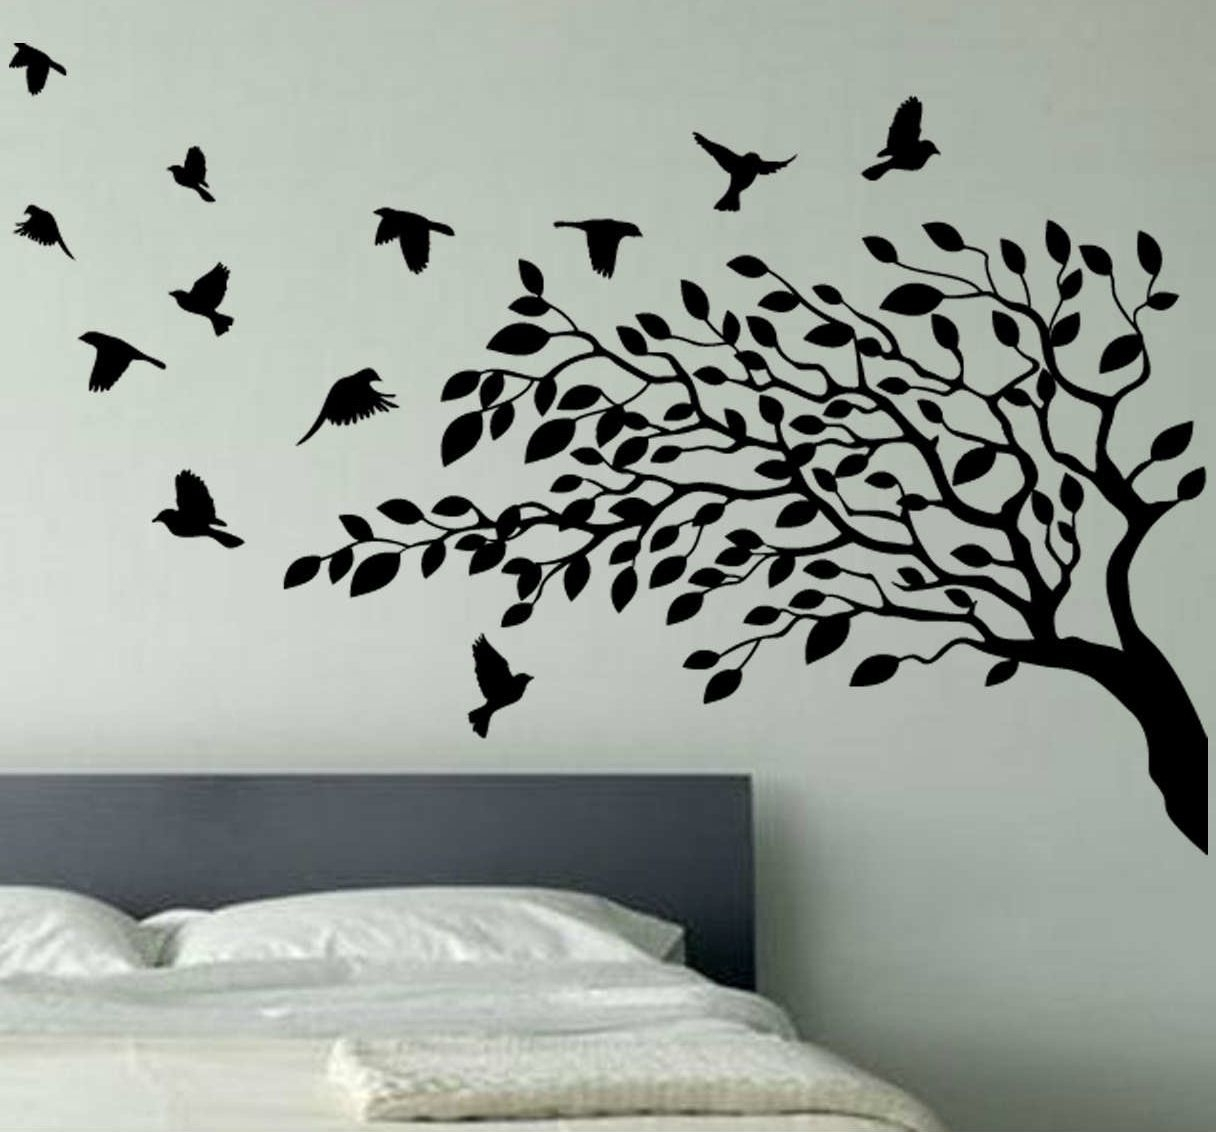 Wallpaper Wall Decals Stickers Art Vinyl Removable Birdcage Bird Intended For Best And Newest Tree Wall Art (View 7 of 15)